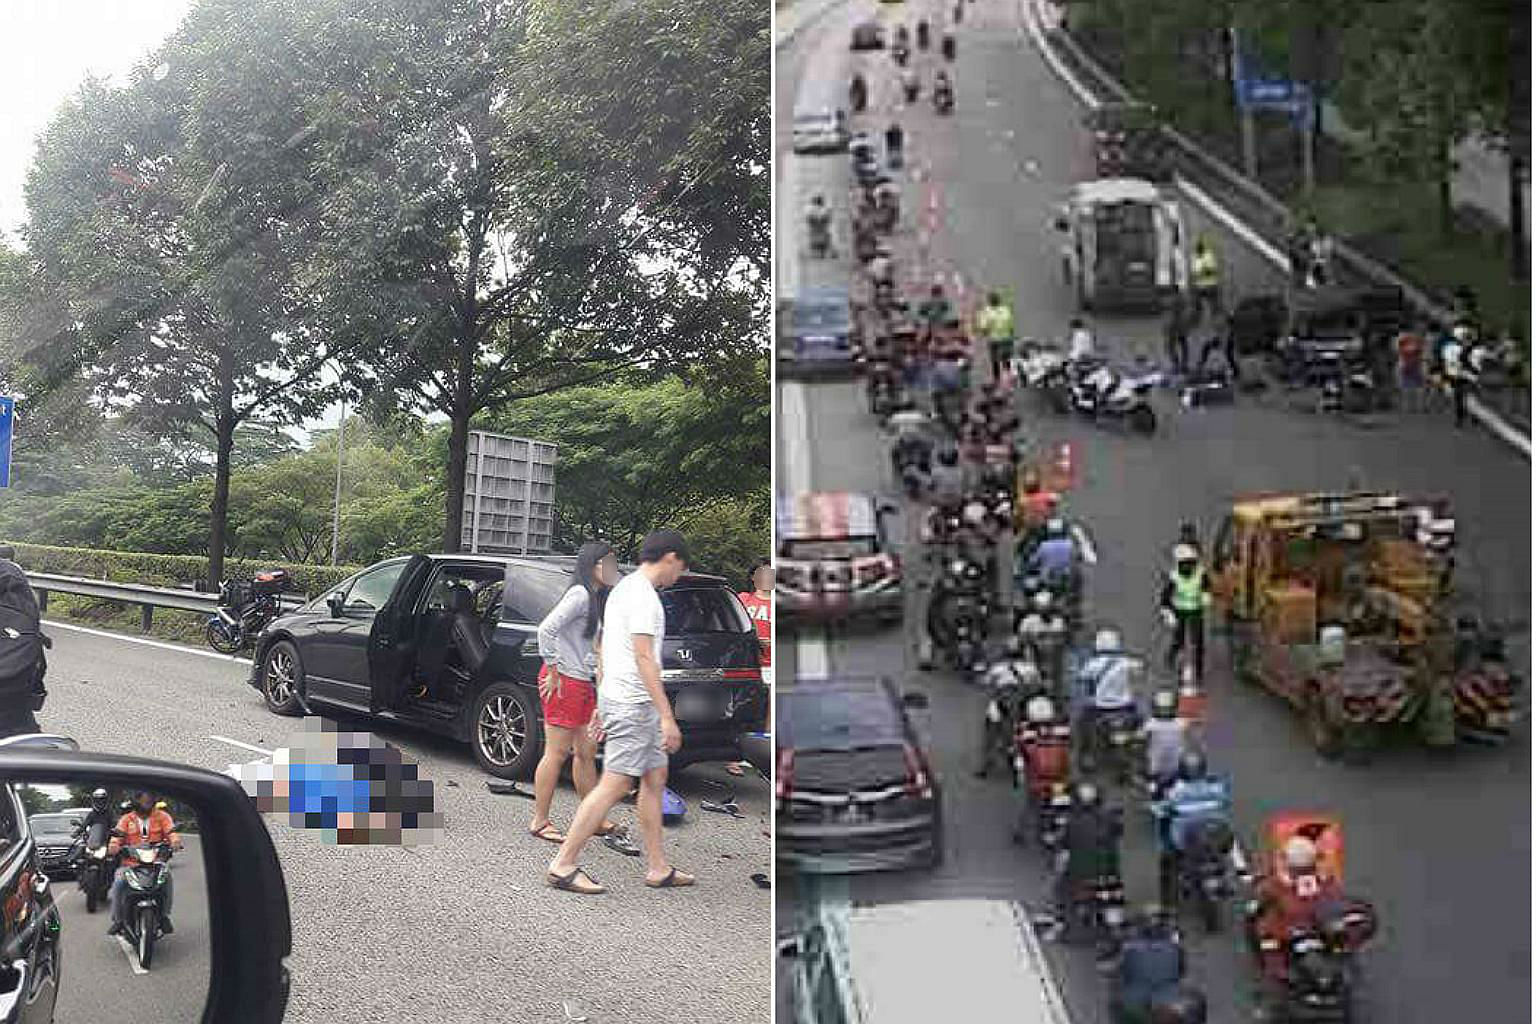 Motorcyclist  Killed In Accident On Bke Singapore News Top Stories The Straits Times